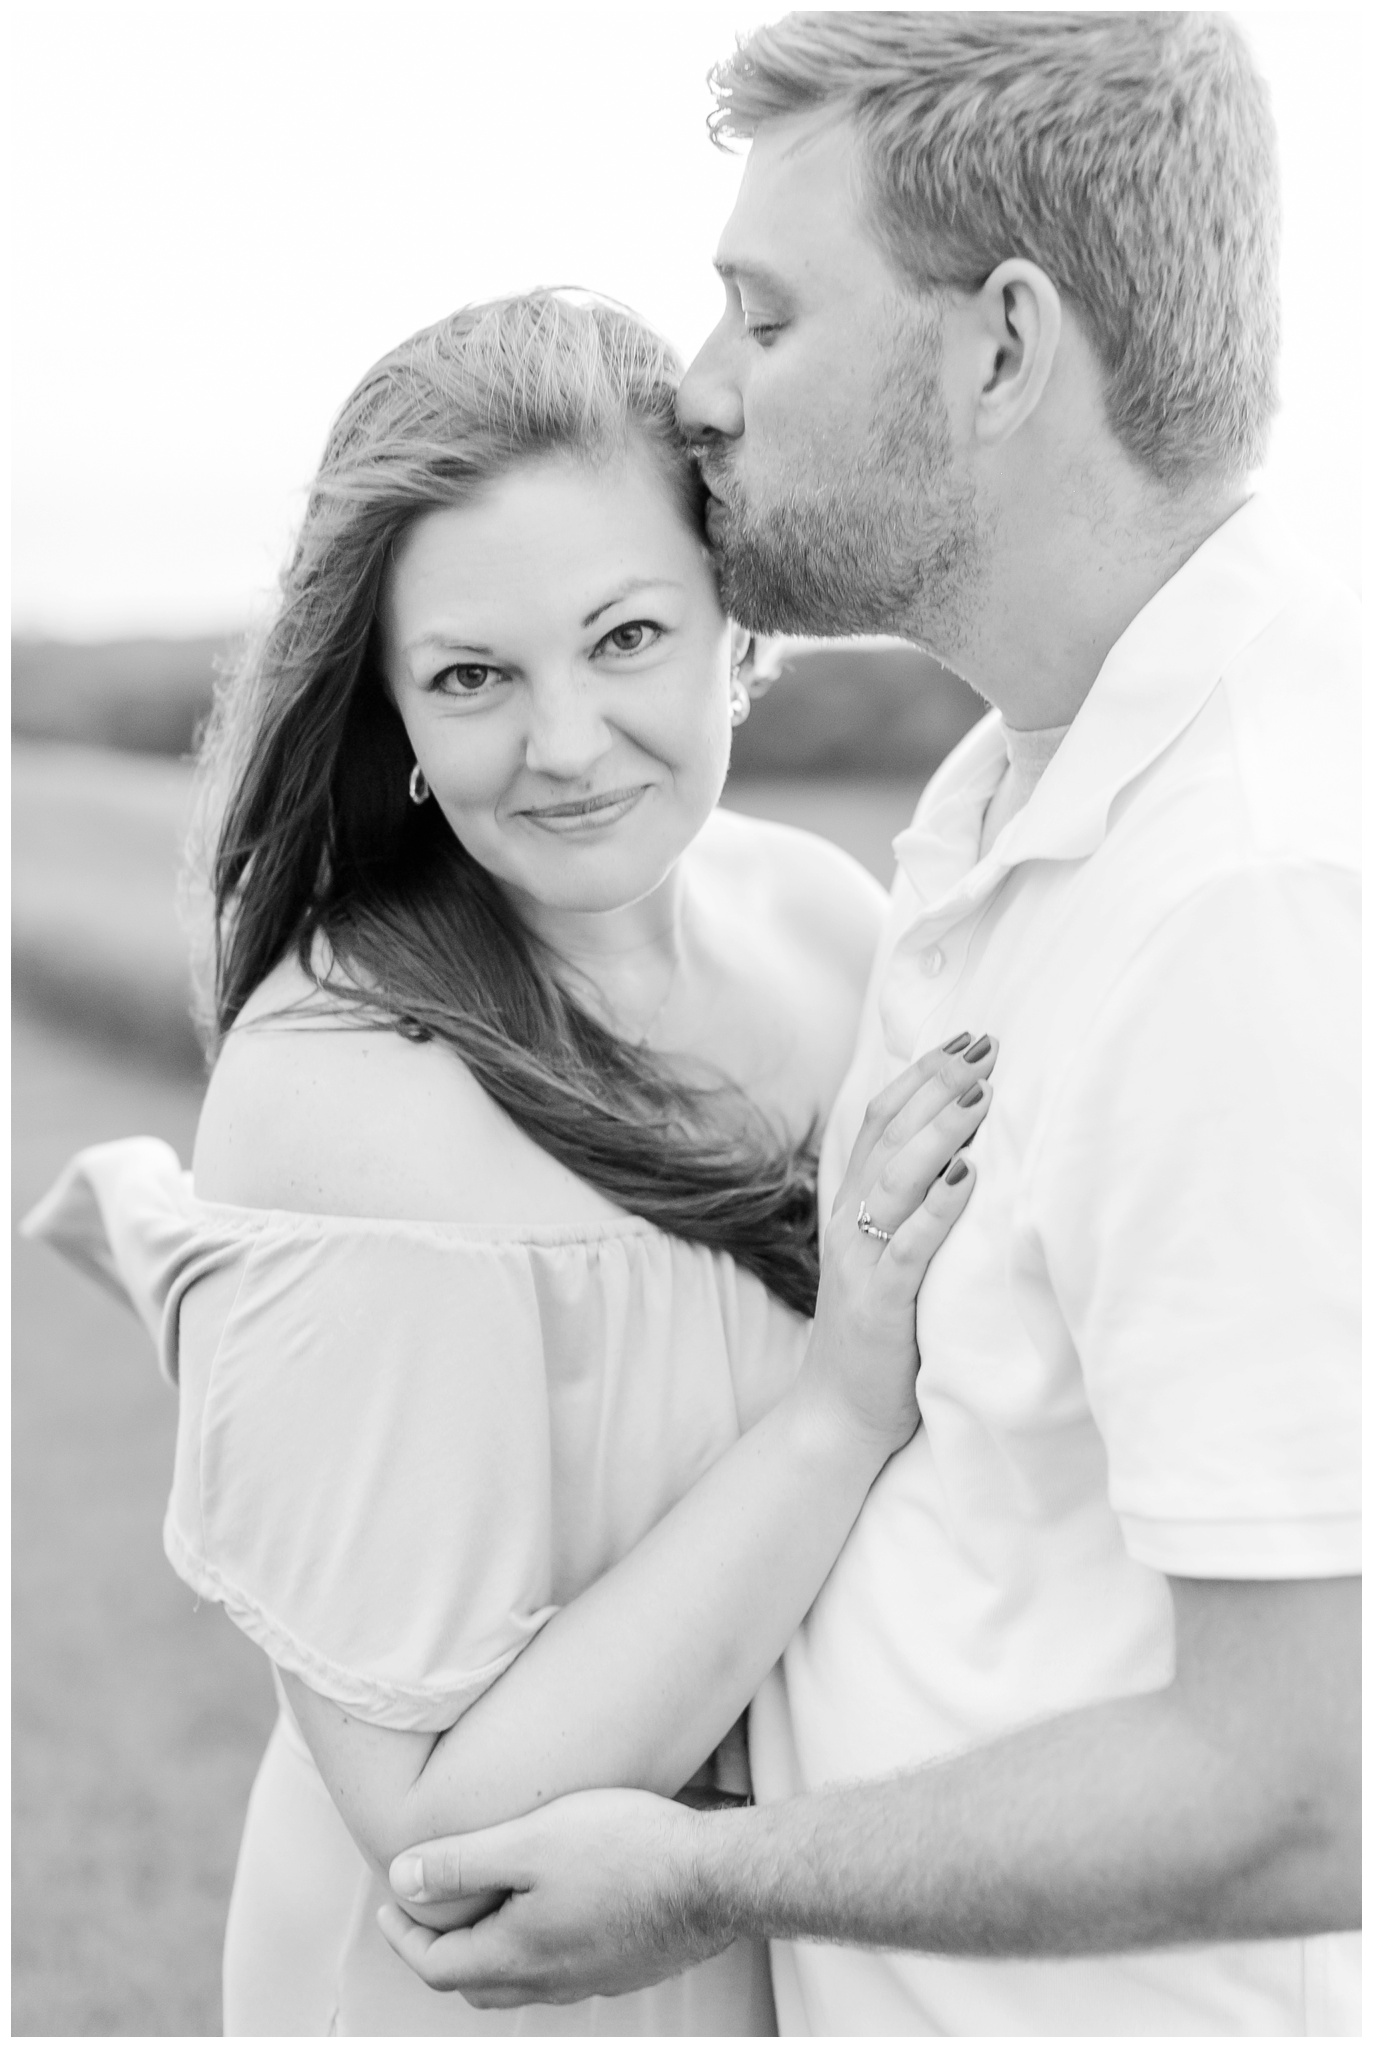 pope_farm_conservancy_engagement_session_madison_wisconsin_engagement_photographers_4165.jpg